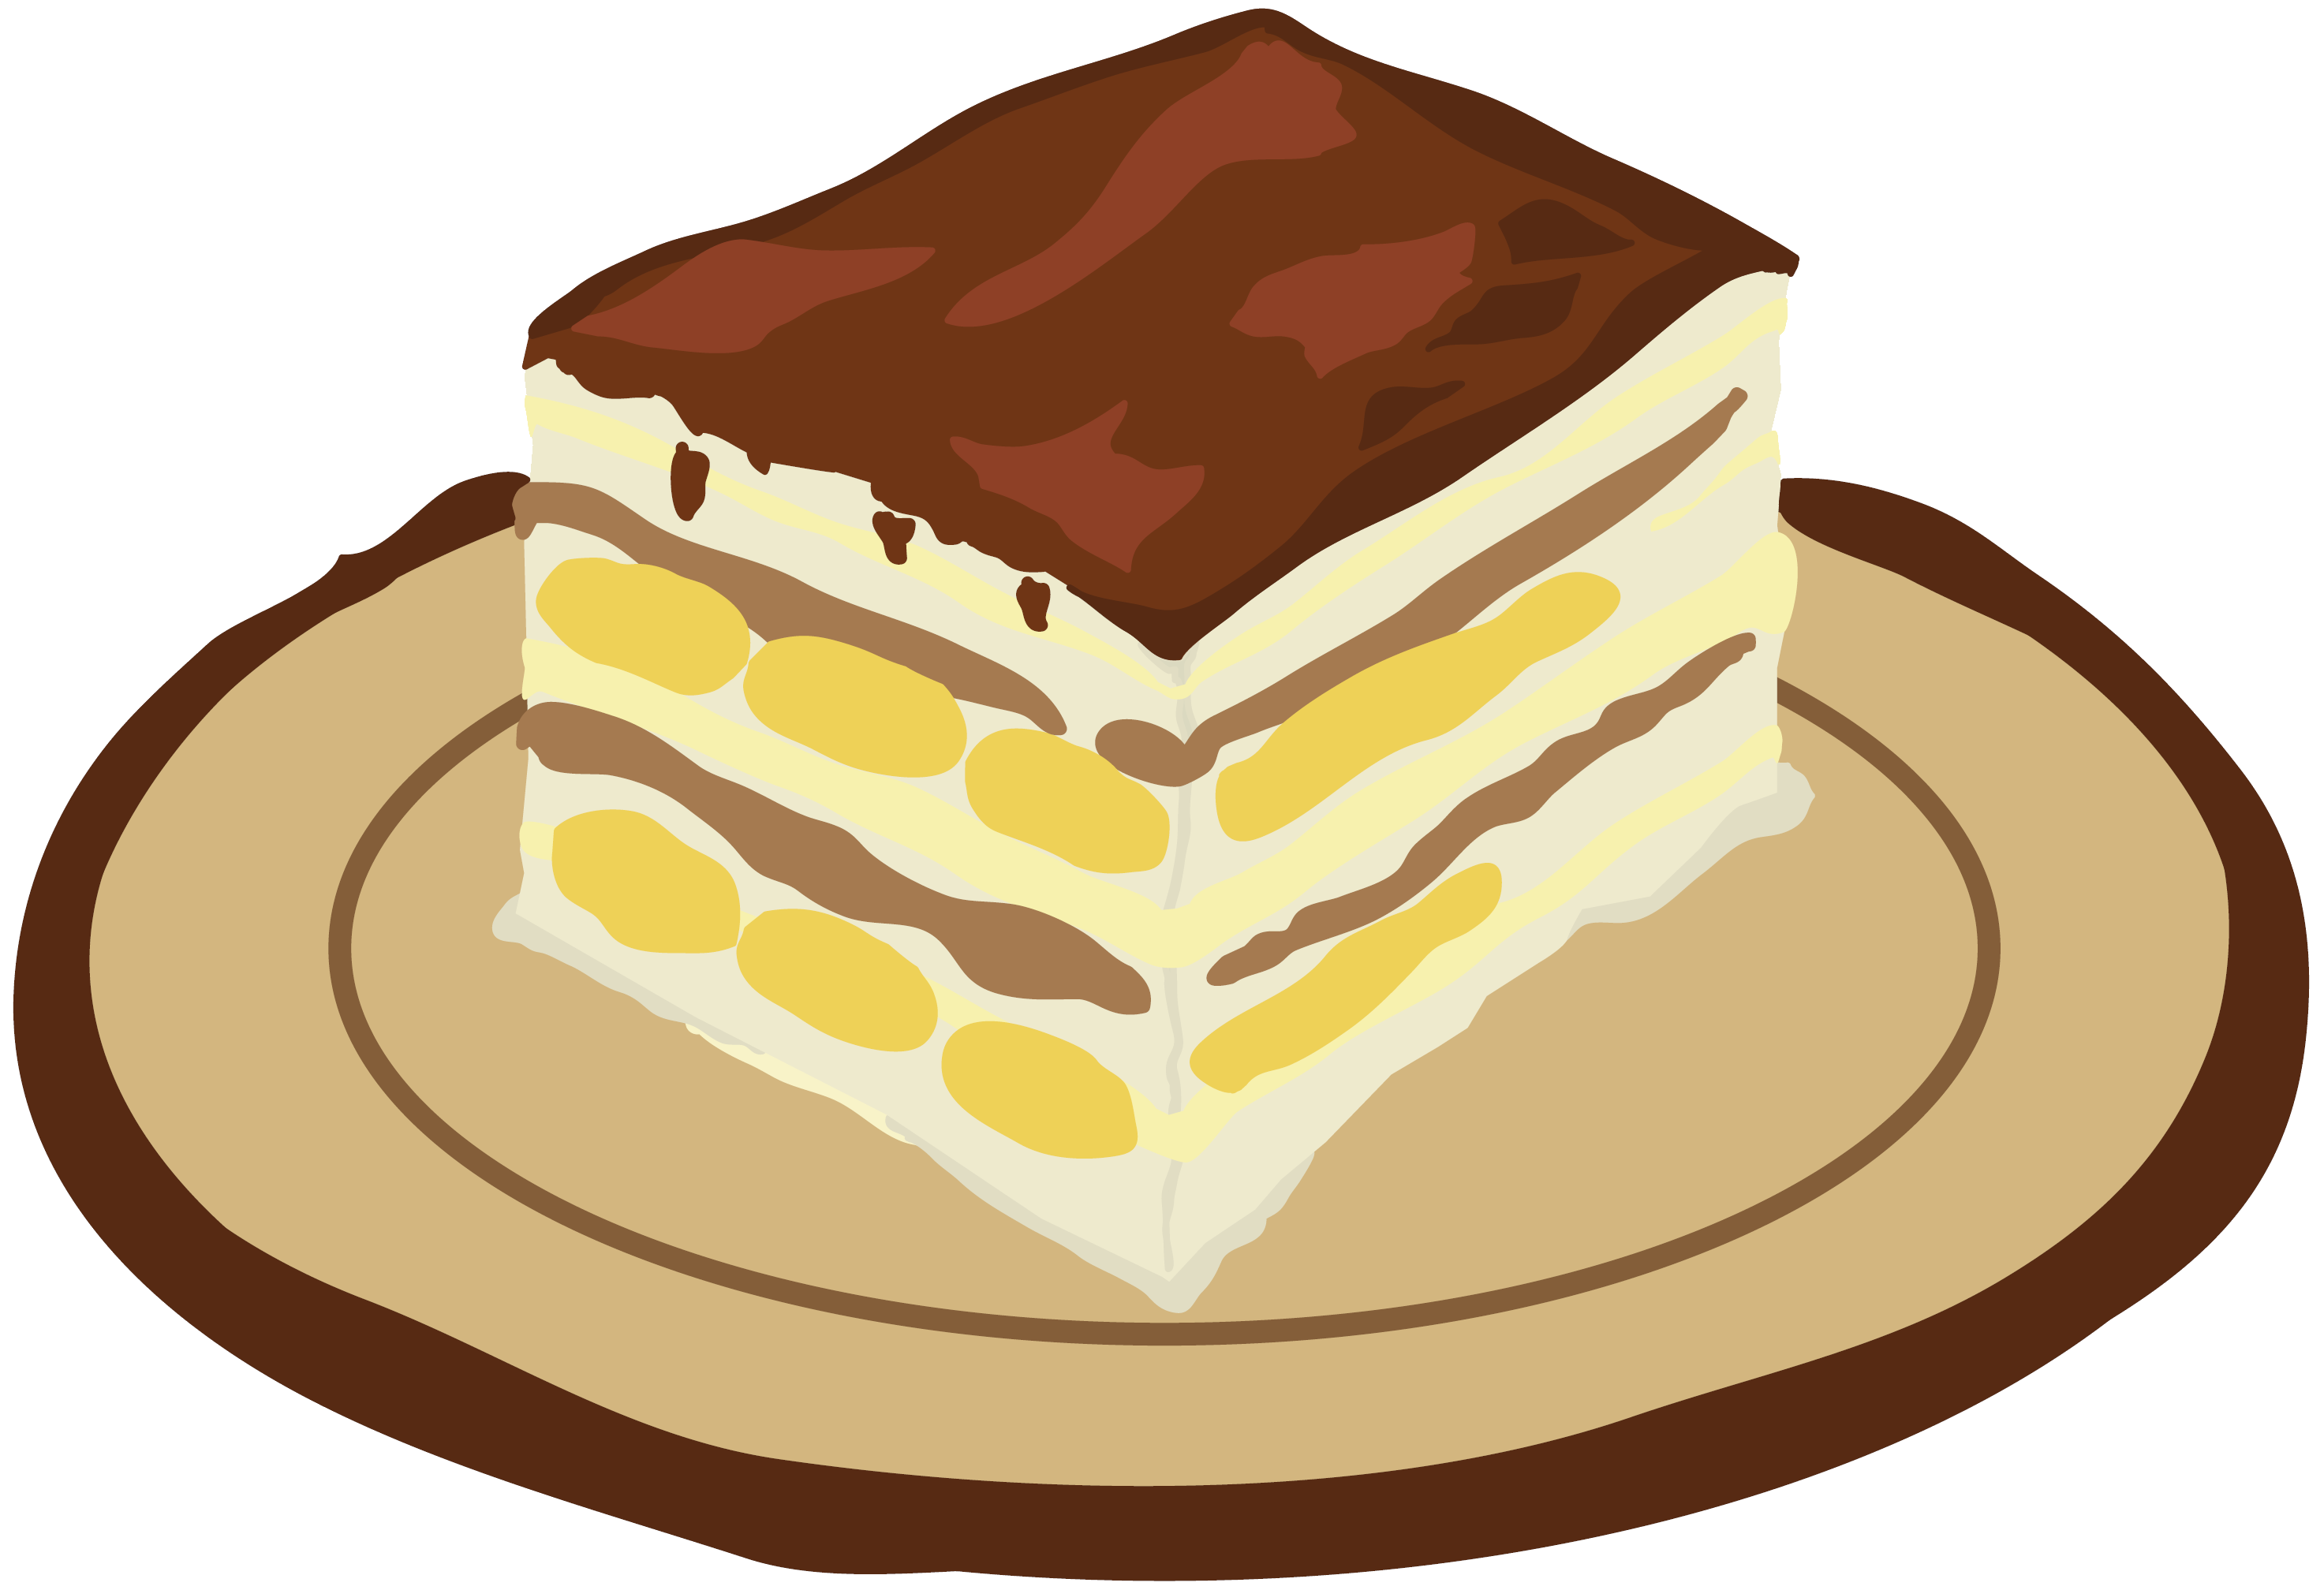 https://tiramisudaytreviso.it/wp-content/uploads/2017/08/Tiramisu.png